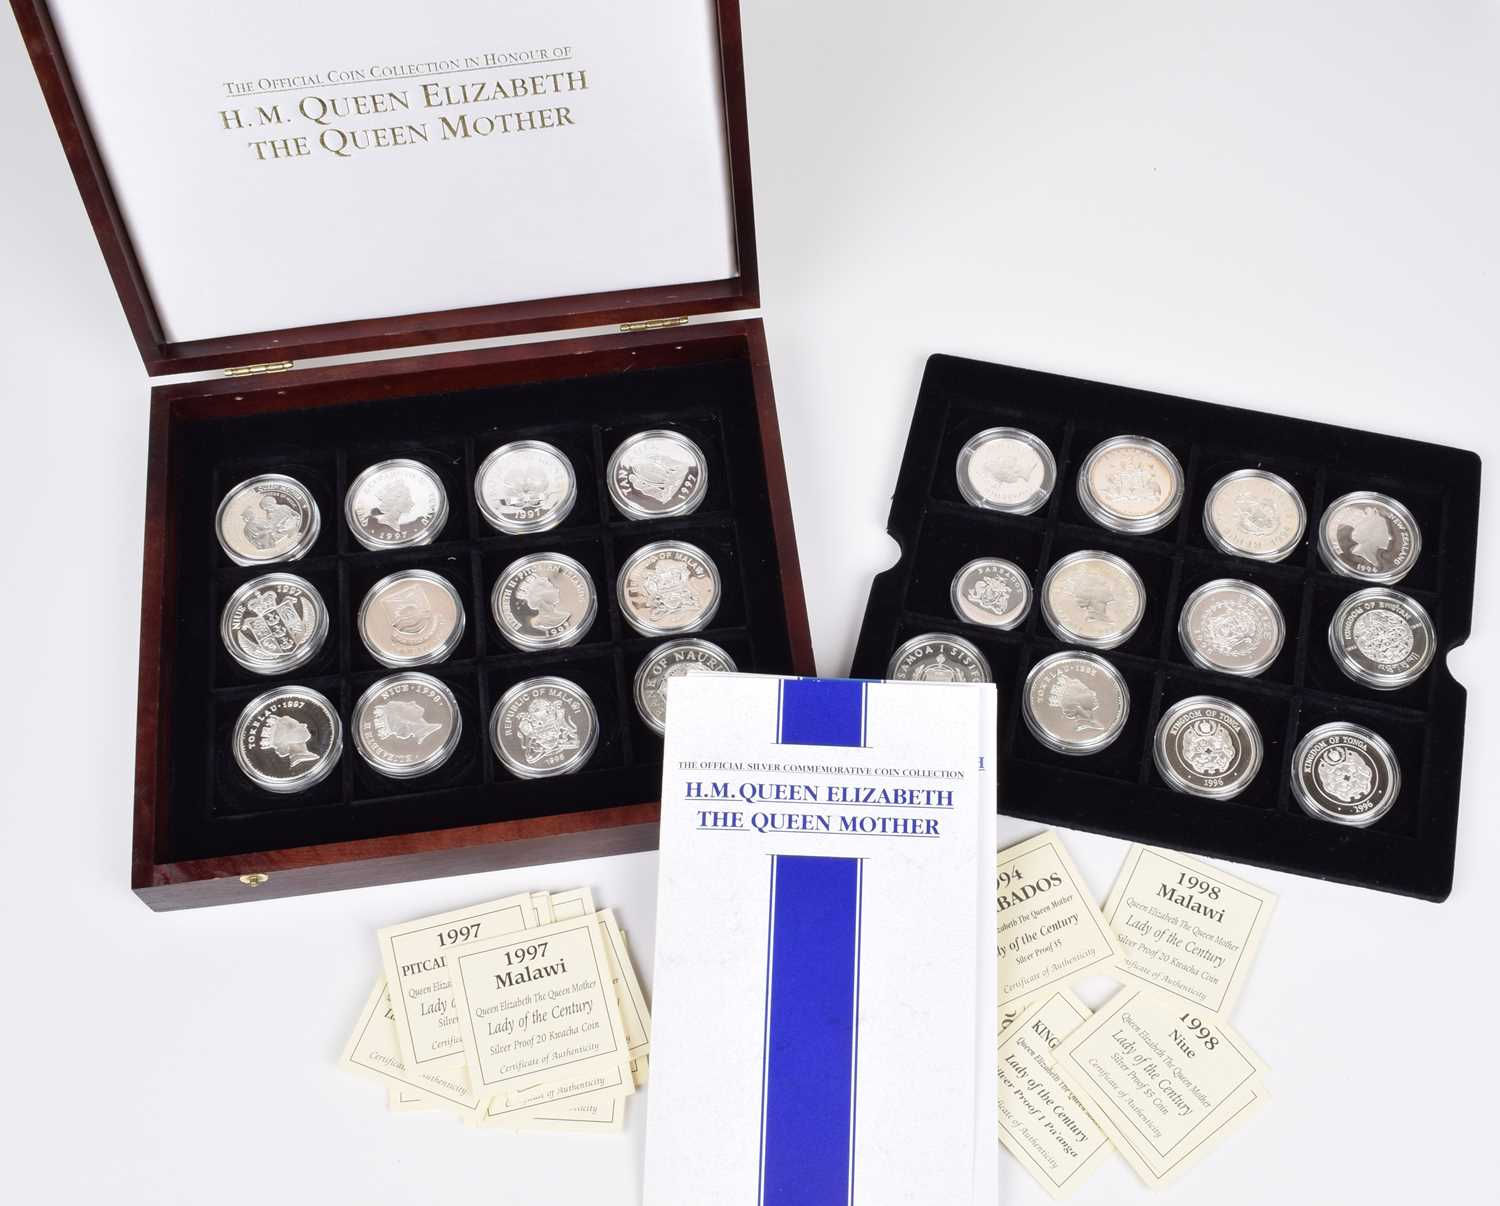 Lot 13-Cased set of silver proof coins celebrating the life of The Queen Mother (24).